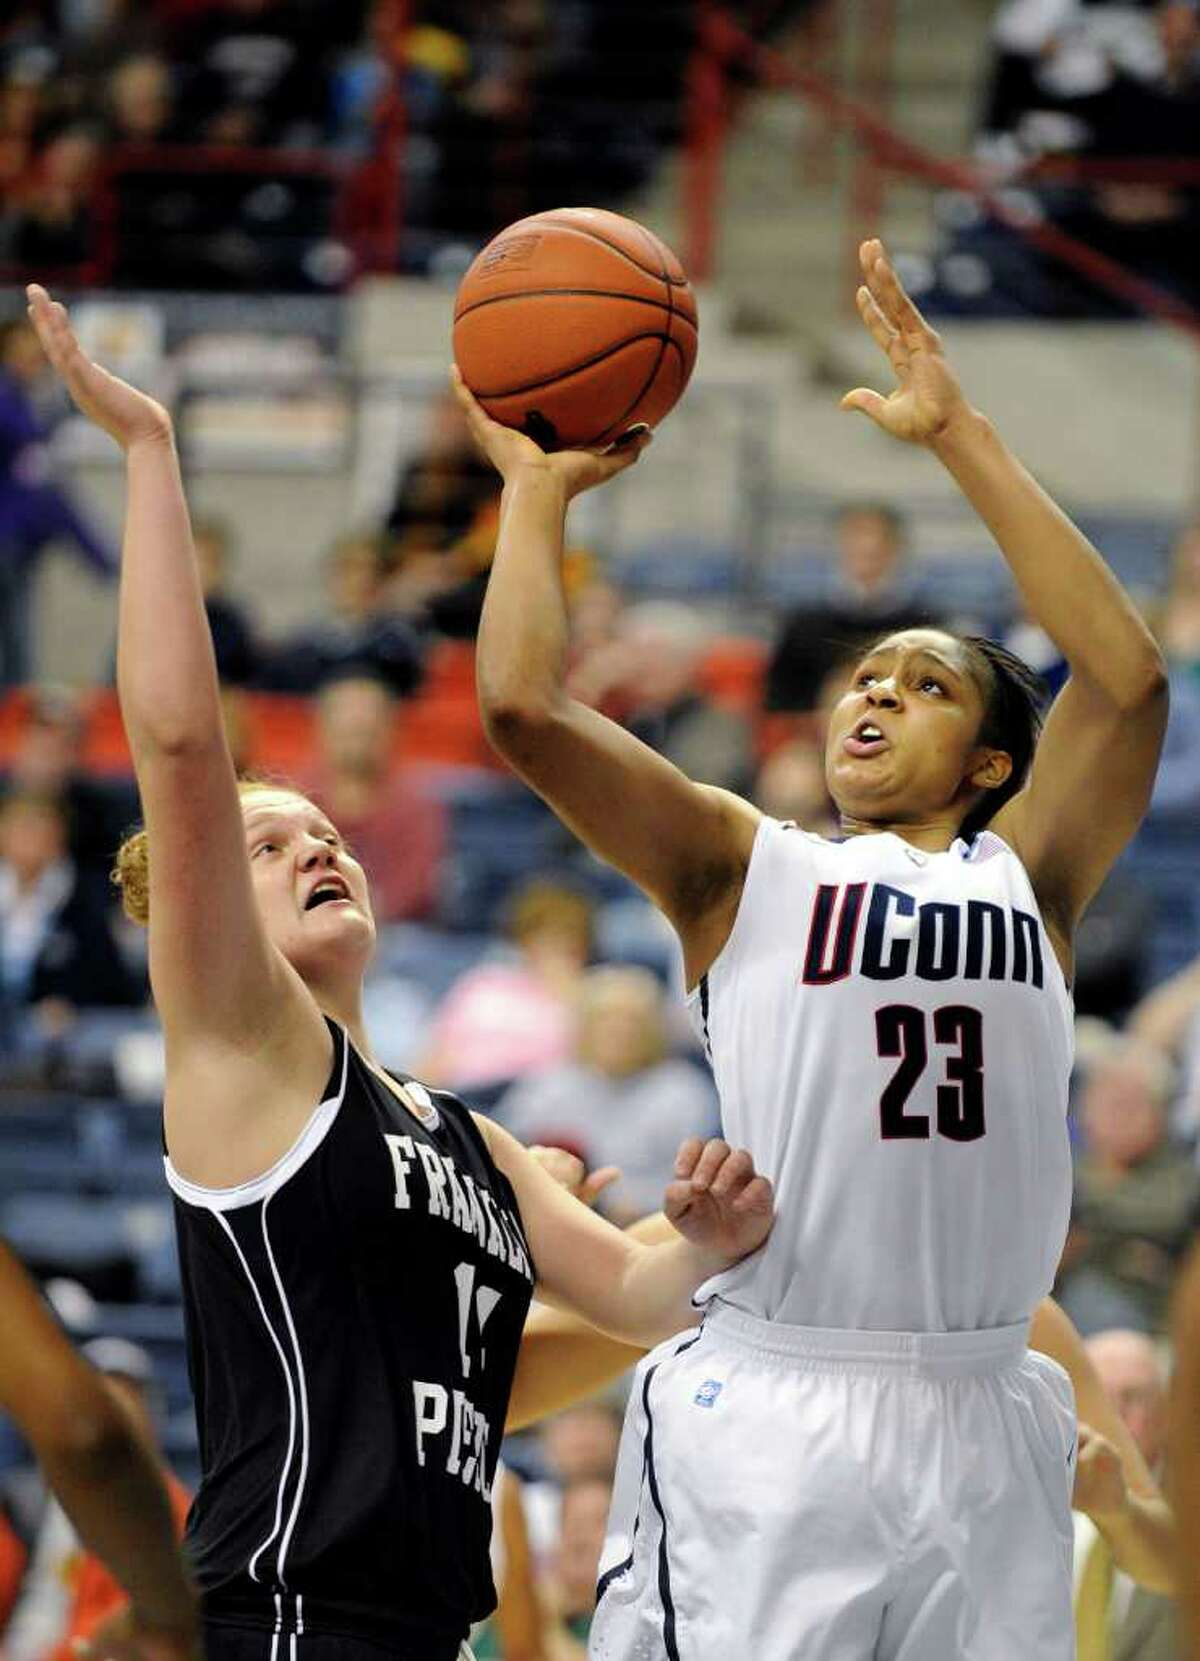 Connecticut's Maya Moore, right, drives to the hoop while being guarded by Franklin Pierce's Jessica Hurd during the first half of their exhibition NCAA women's college basketball game in Storrs, Conn., on Thursday, Nov. 4, 2010. (AP Photo/Fred Beckham)